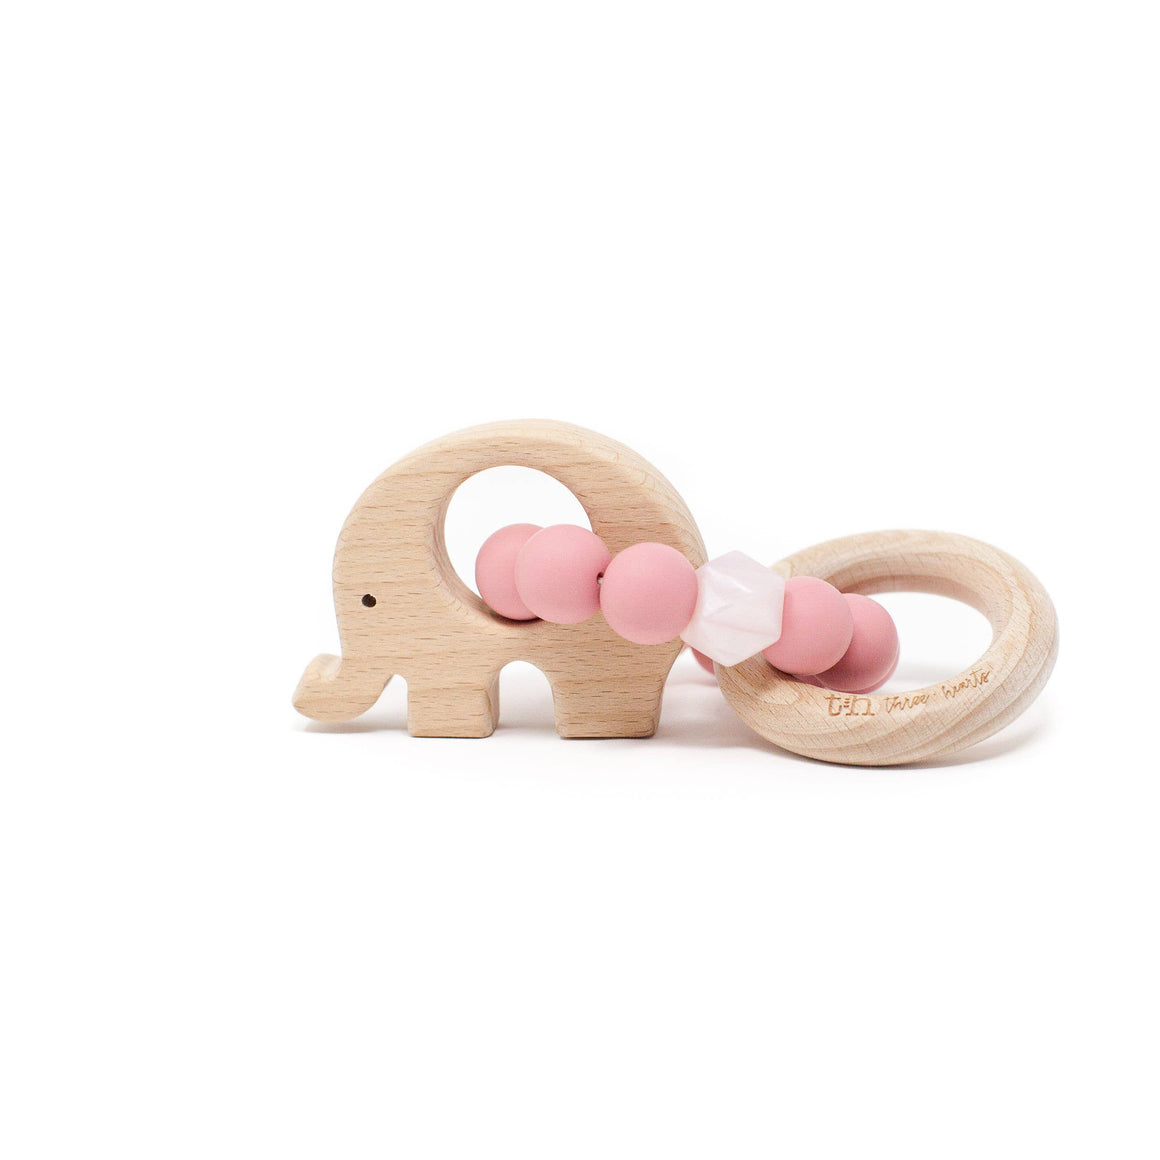 Three Hearts | Elephant Wooden Teething Rattle | Dusty Rose